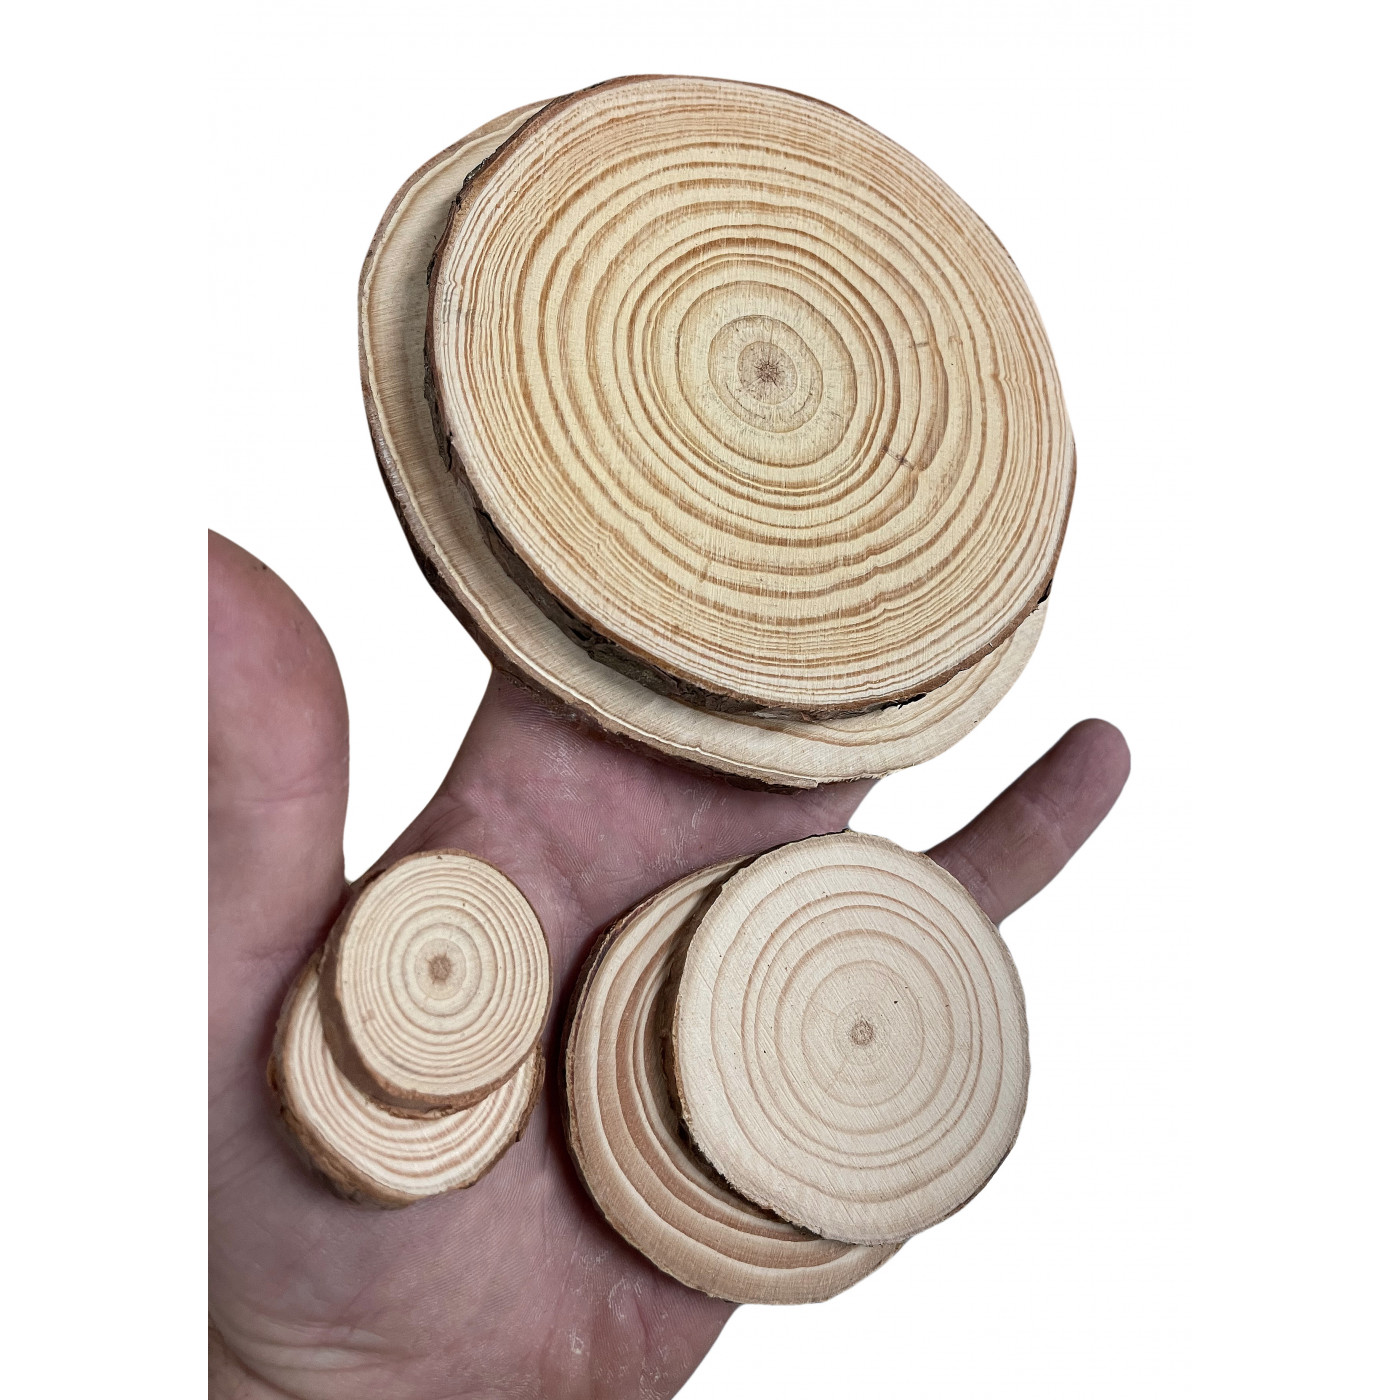 Set of 50 slices of wood (dia: 3-4 cm, thickness: 5 mm)